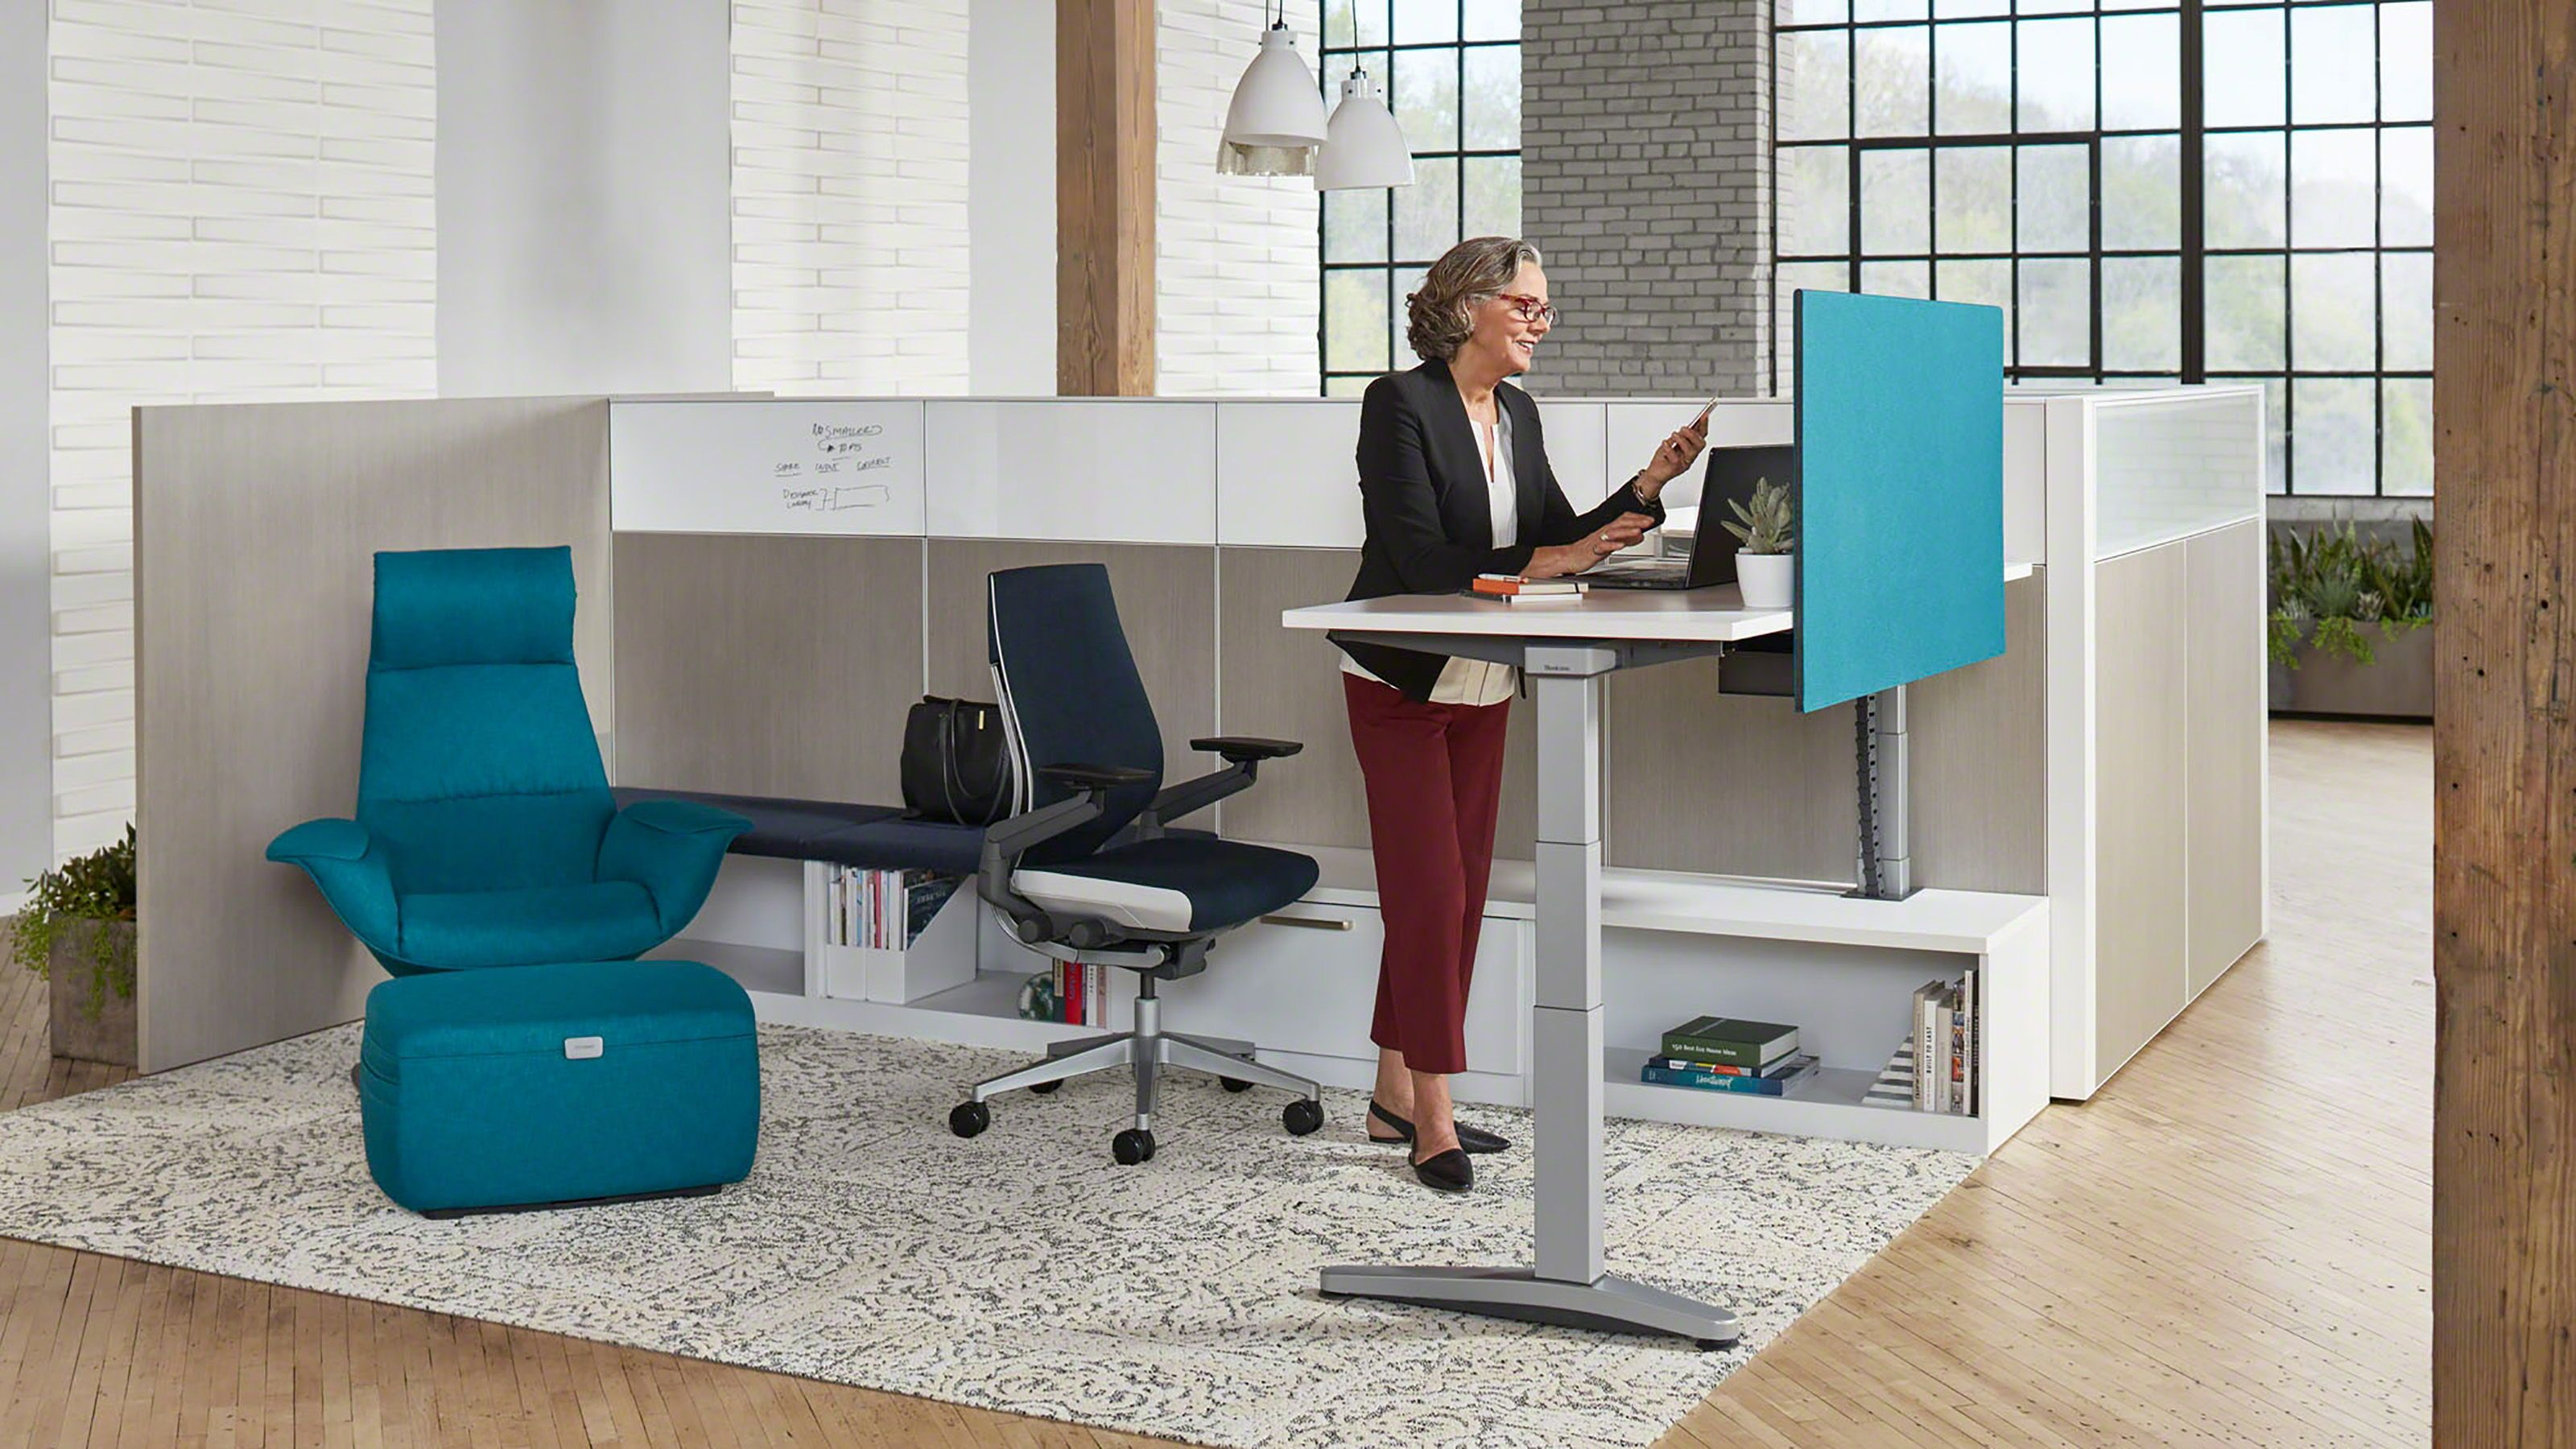 Noise Pollution and Acoustics in the Office Adjustable